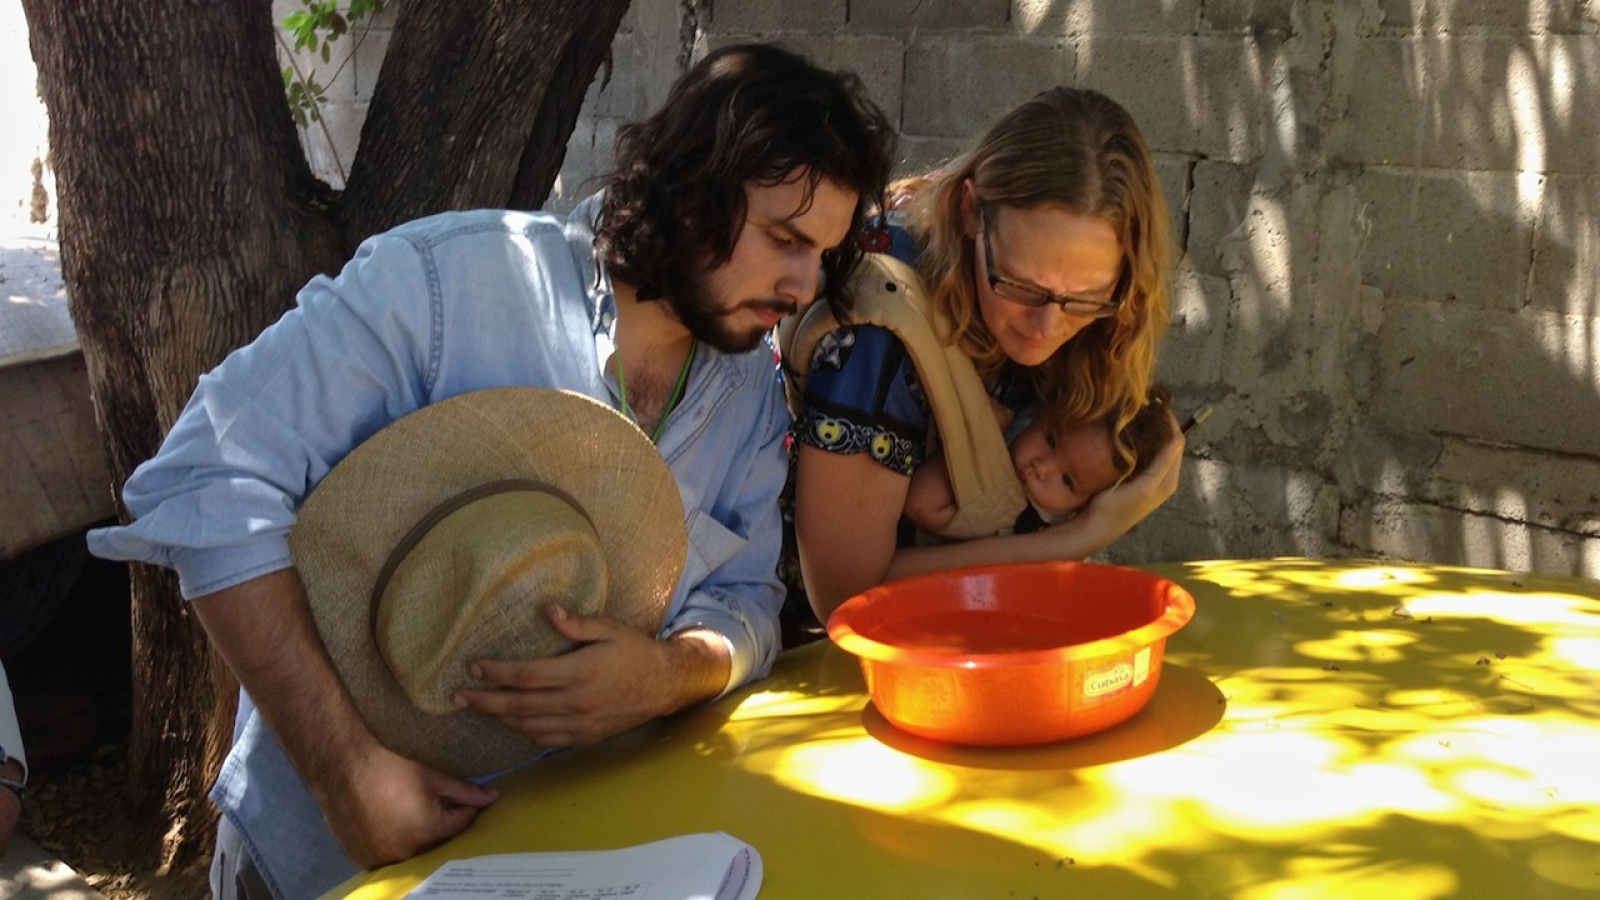 An image of a man and woman (holding a child) looking into a bowl of water